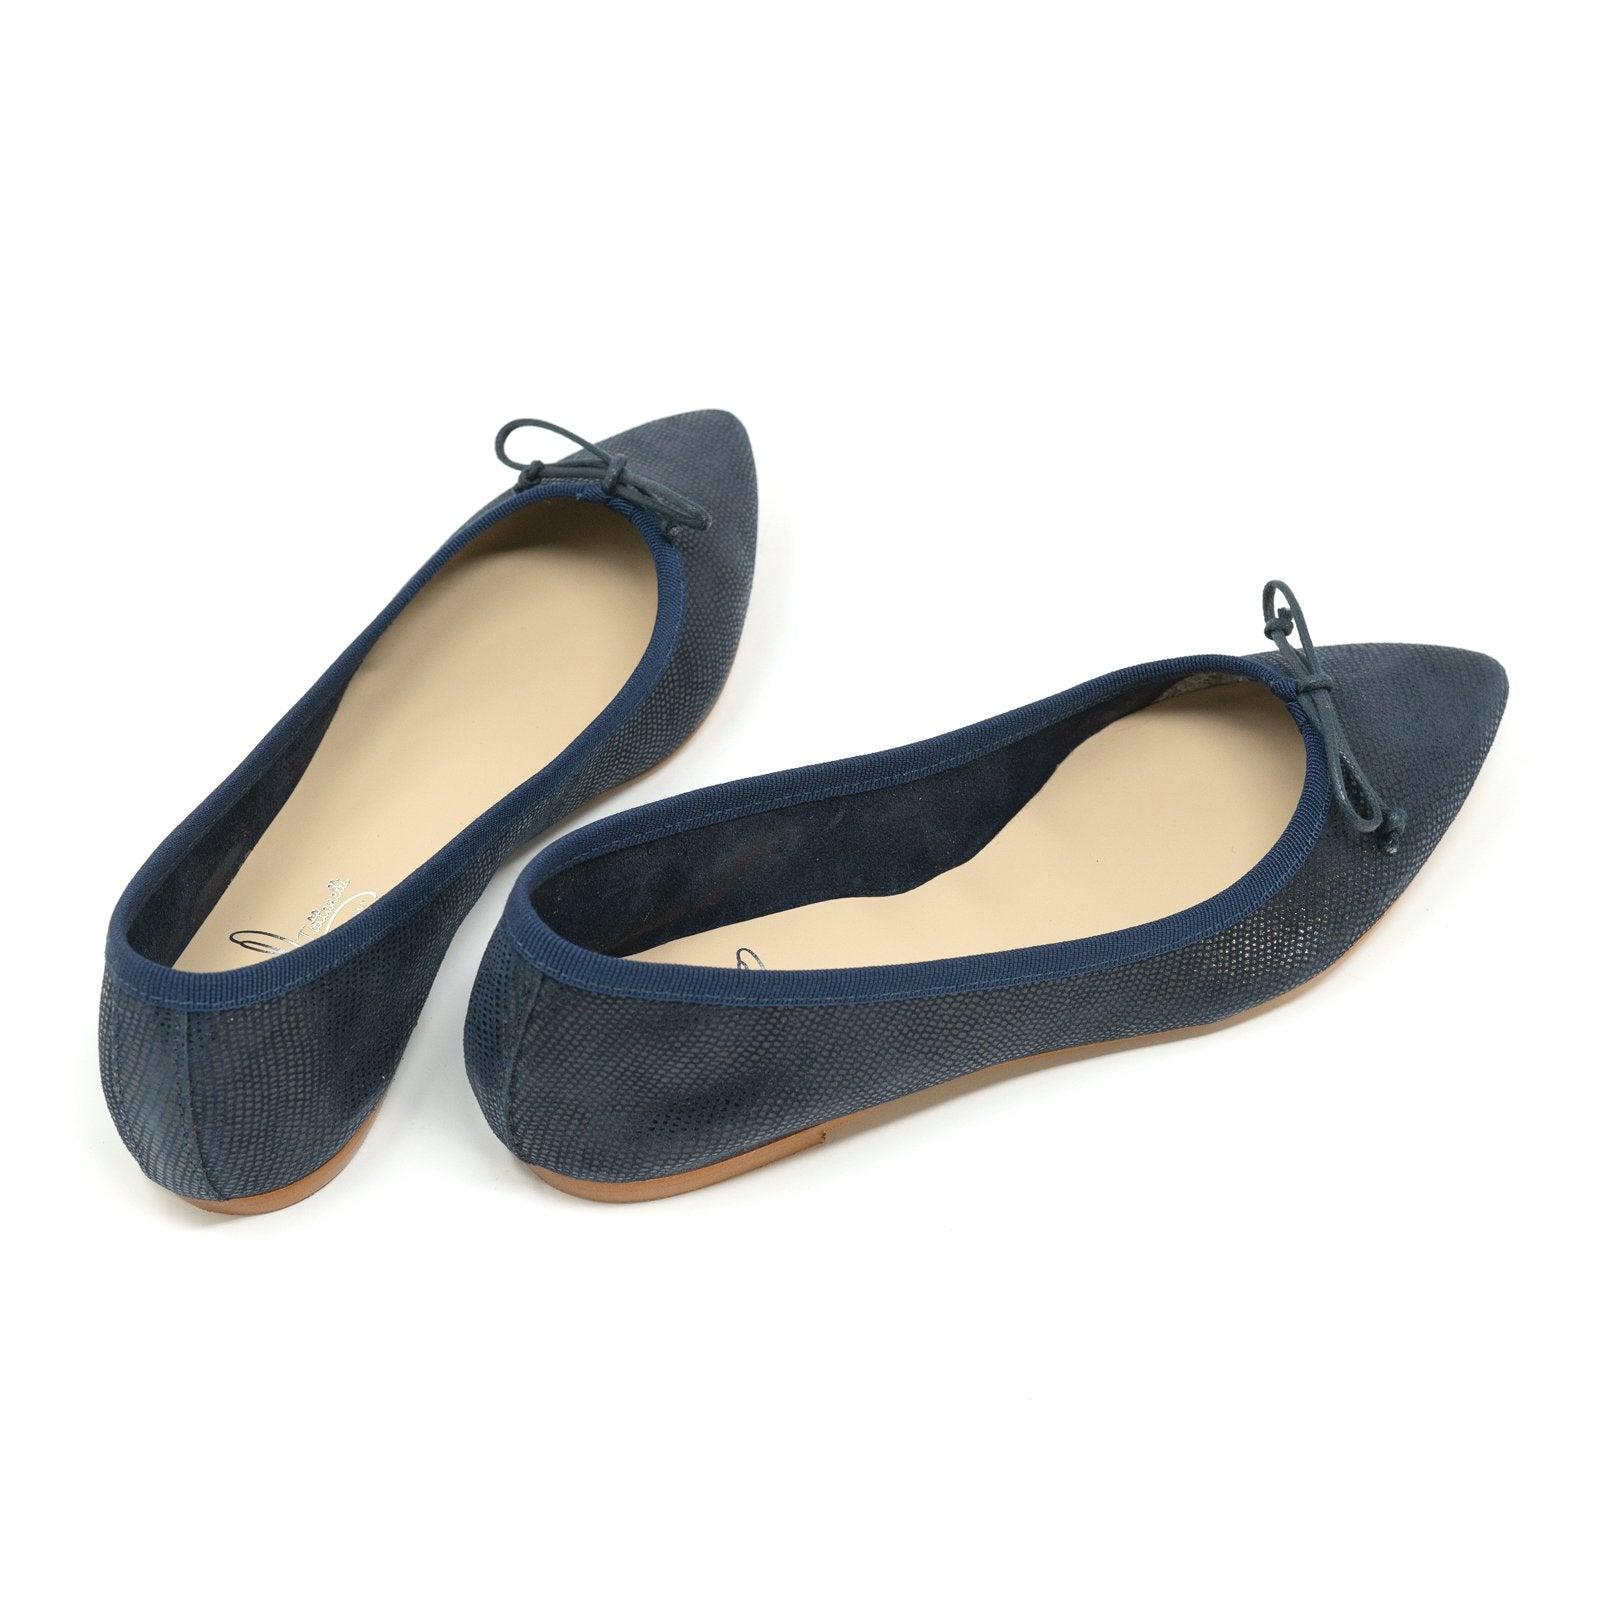 Women's Pointed Slip On Ballerina Flats in Blue - Jennifer Tattanelli